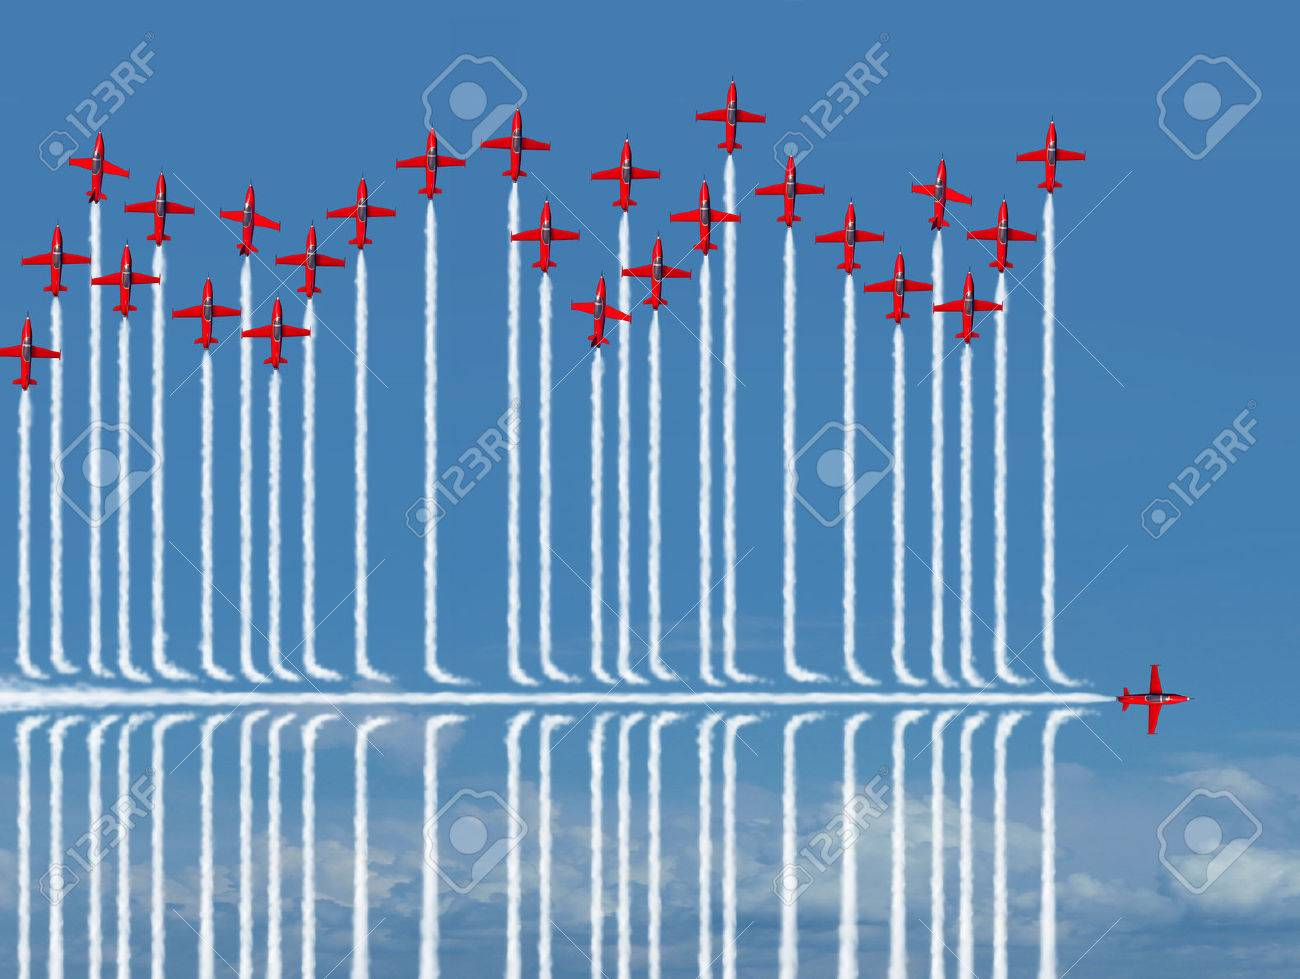 Different strategy business concept as an individual jet airplane flying under the competition as a metaphor for new confident strategic thinking finding a new way to success with 3D illustration elements. Standard-Bild - 56997795